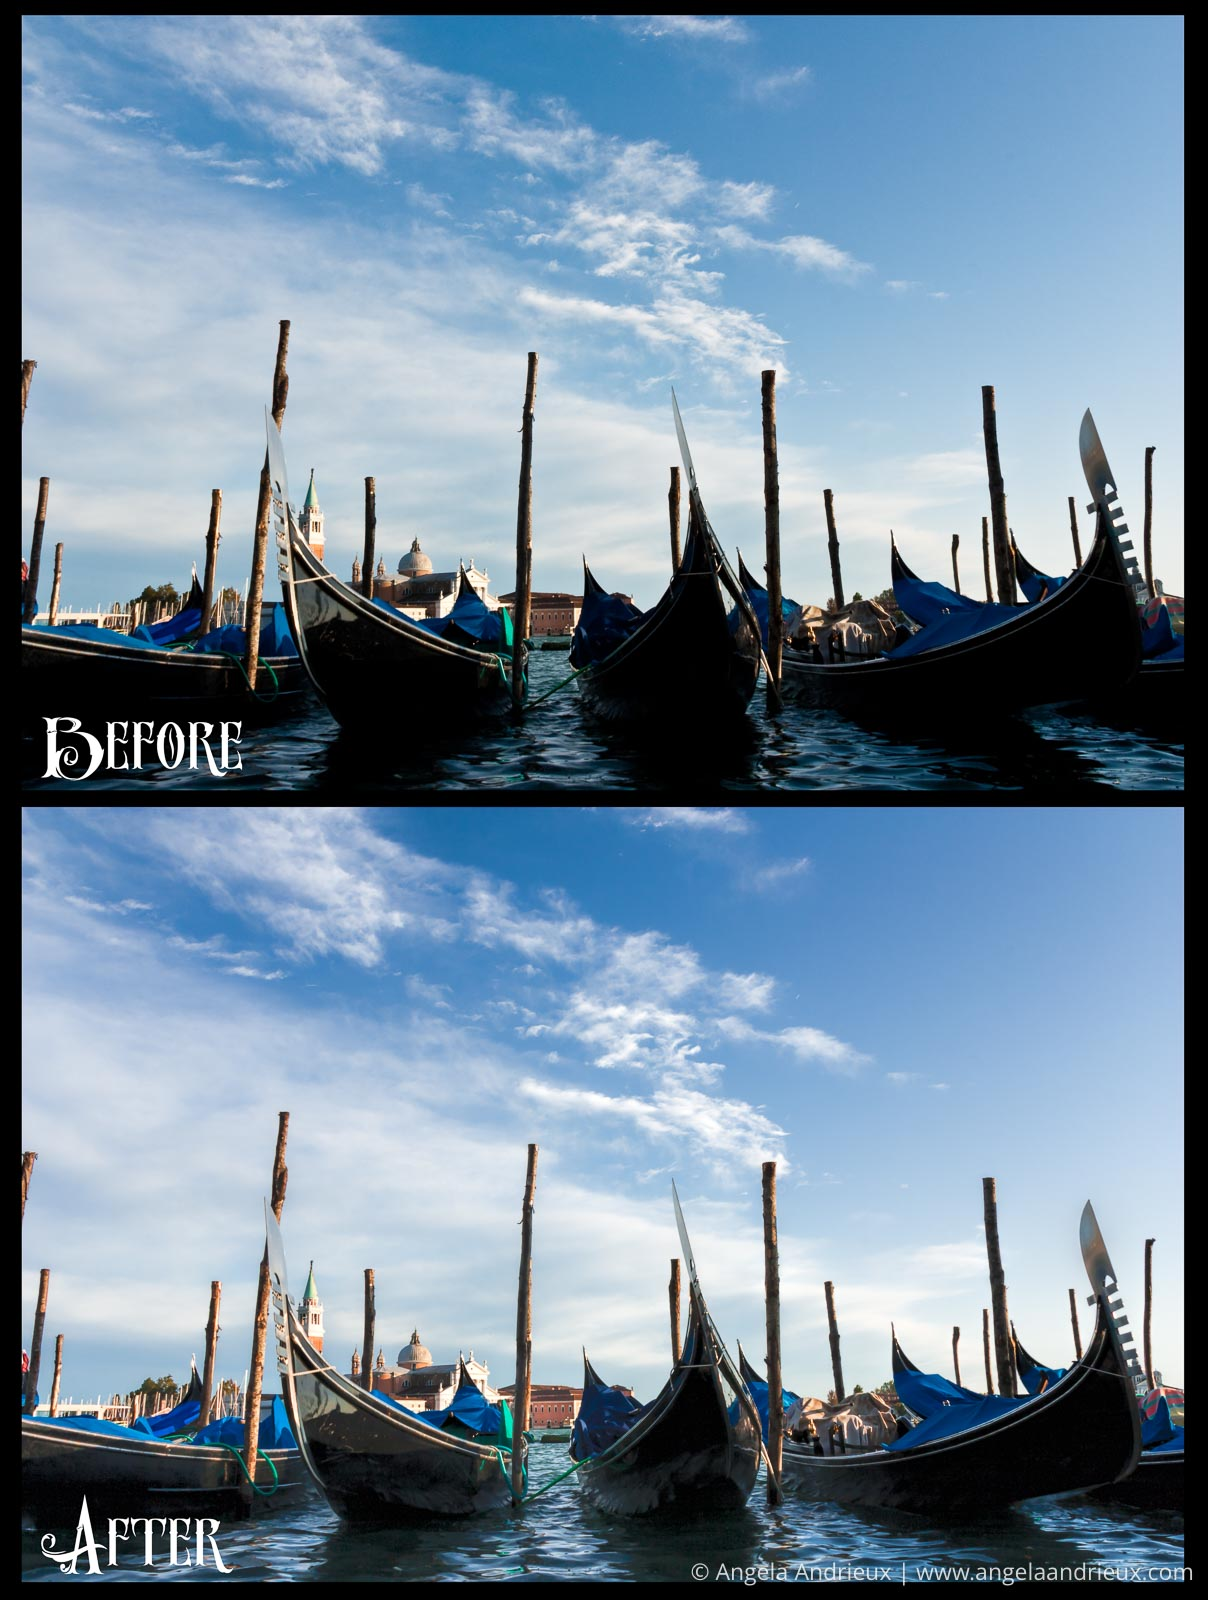 Venetian Gondolas before and after Topaz Clarity